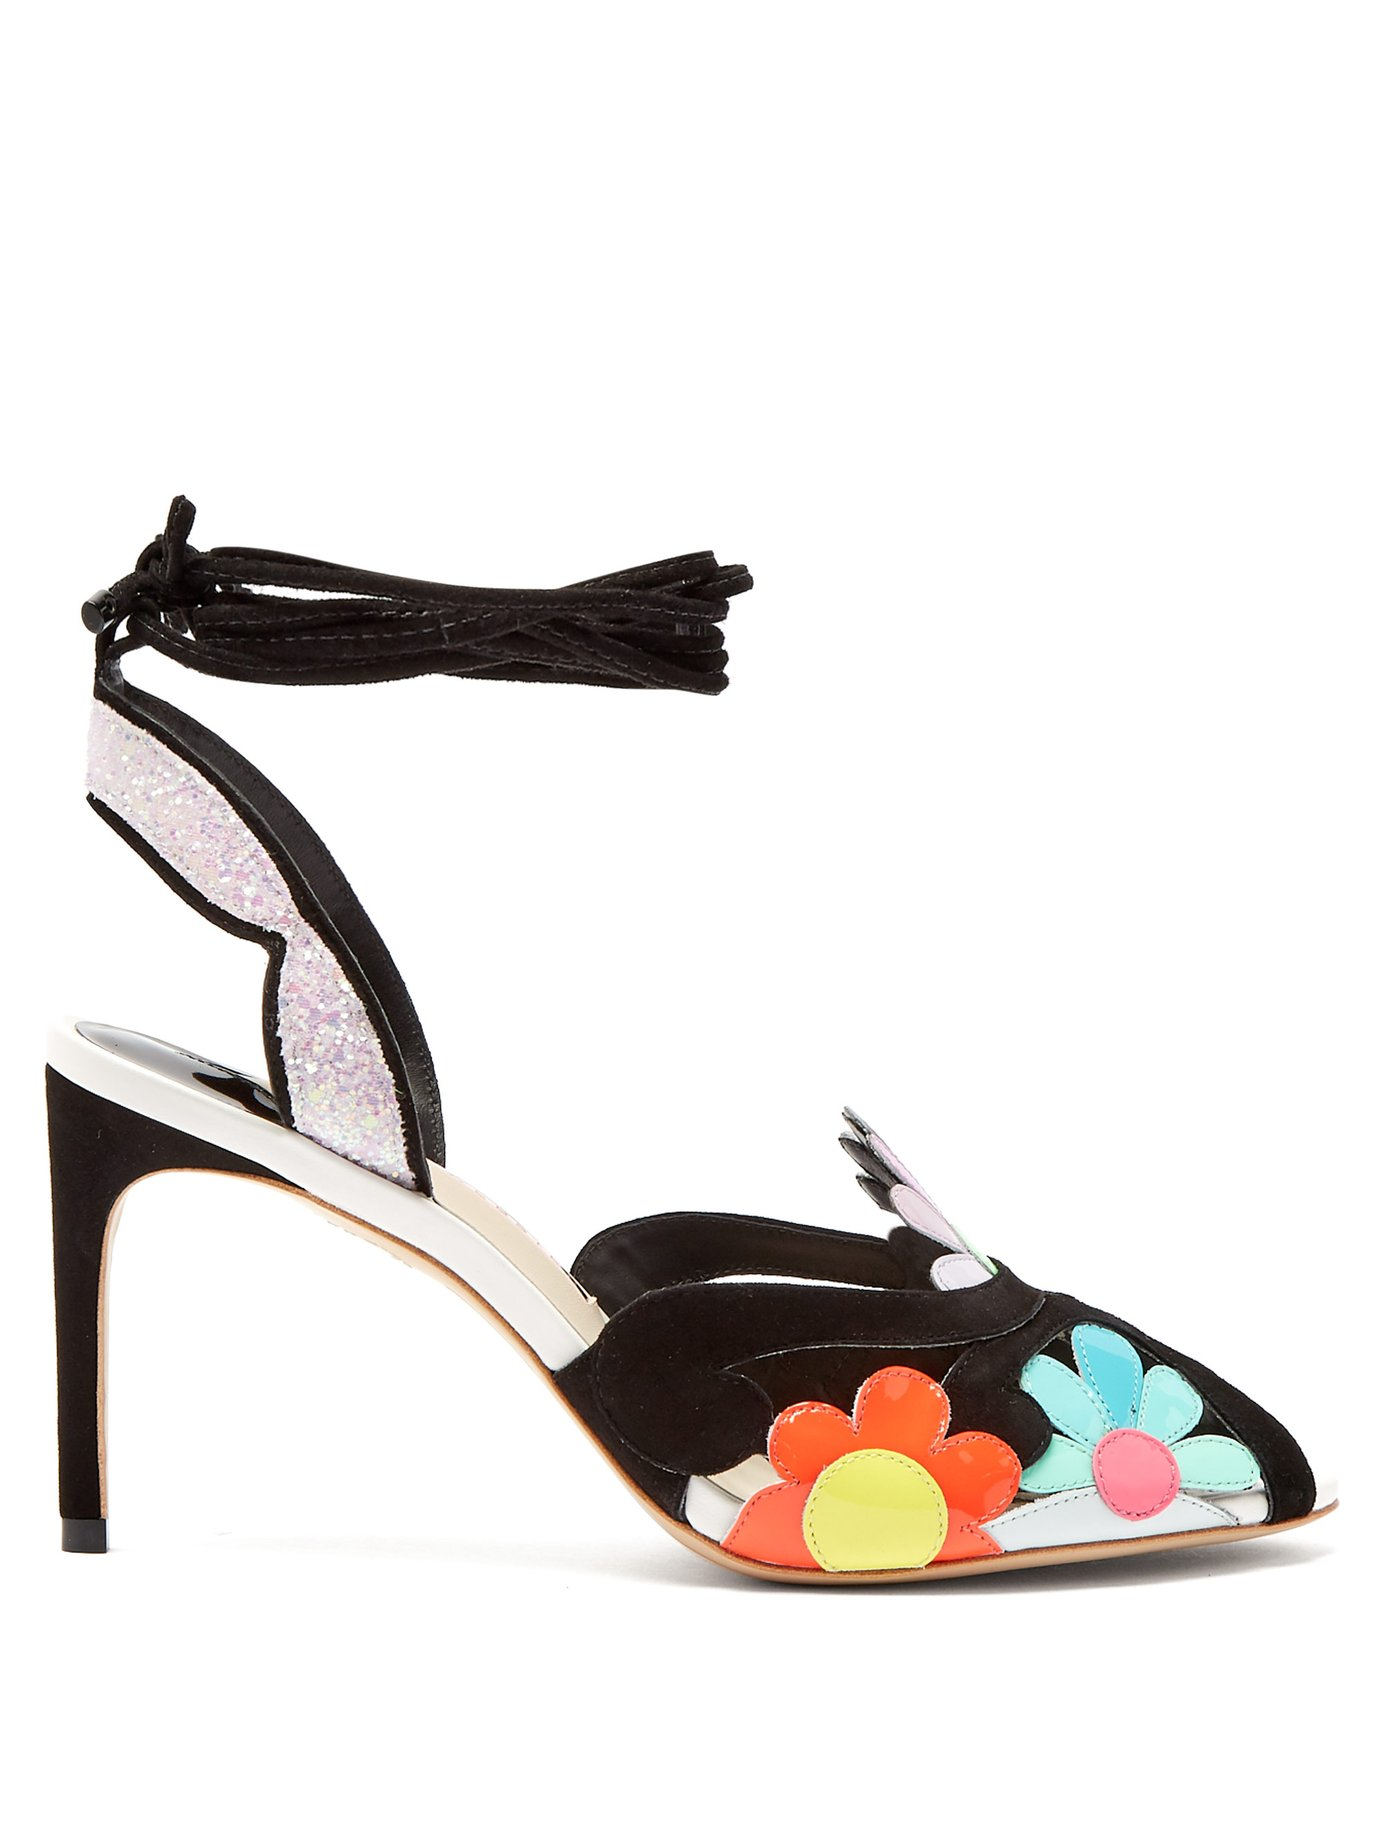 Sophia Webster Frida floral-embellished sandals